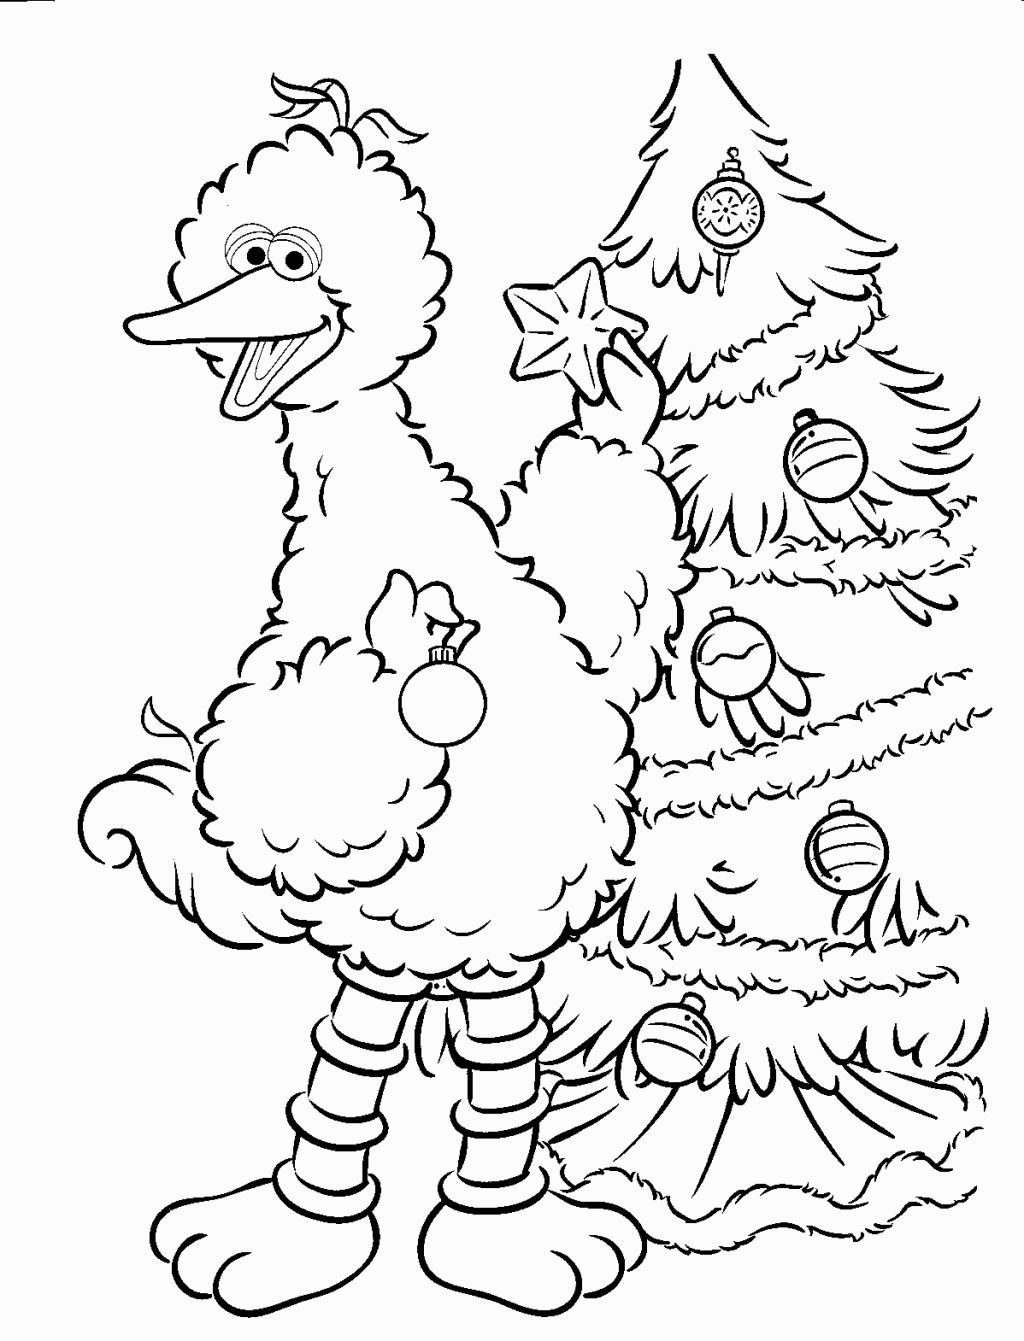 Sesame Street Coloring Sheets Sesame Street Coloring Pages Sesame Street Christmas Christmas Coloring Pages